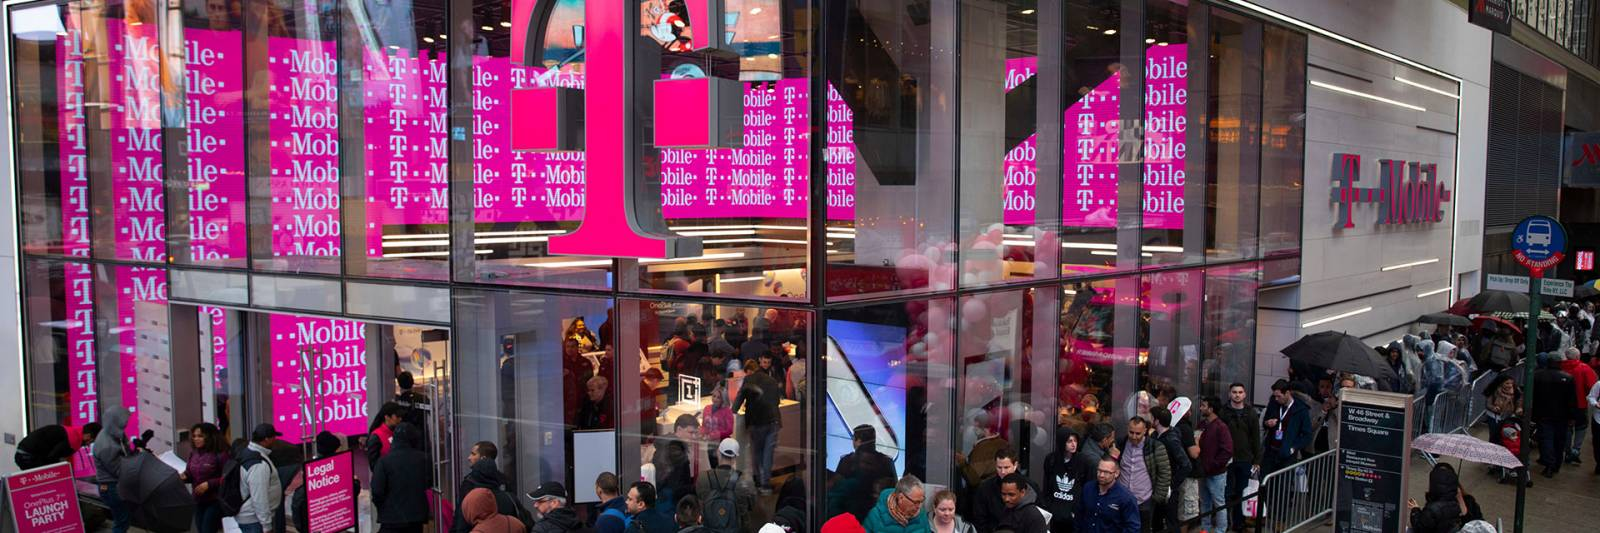 Hackers Breach T Mobile Customer Records